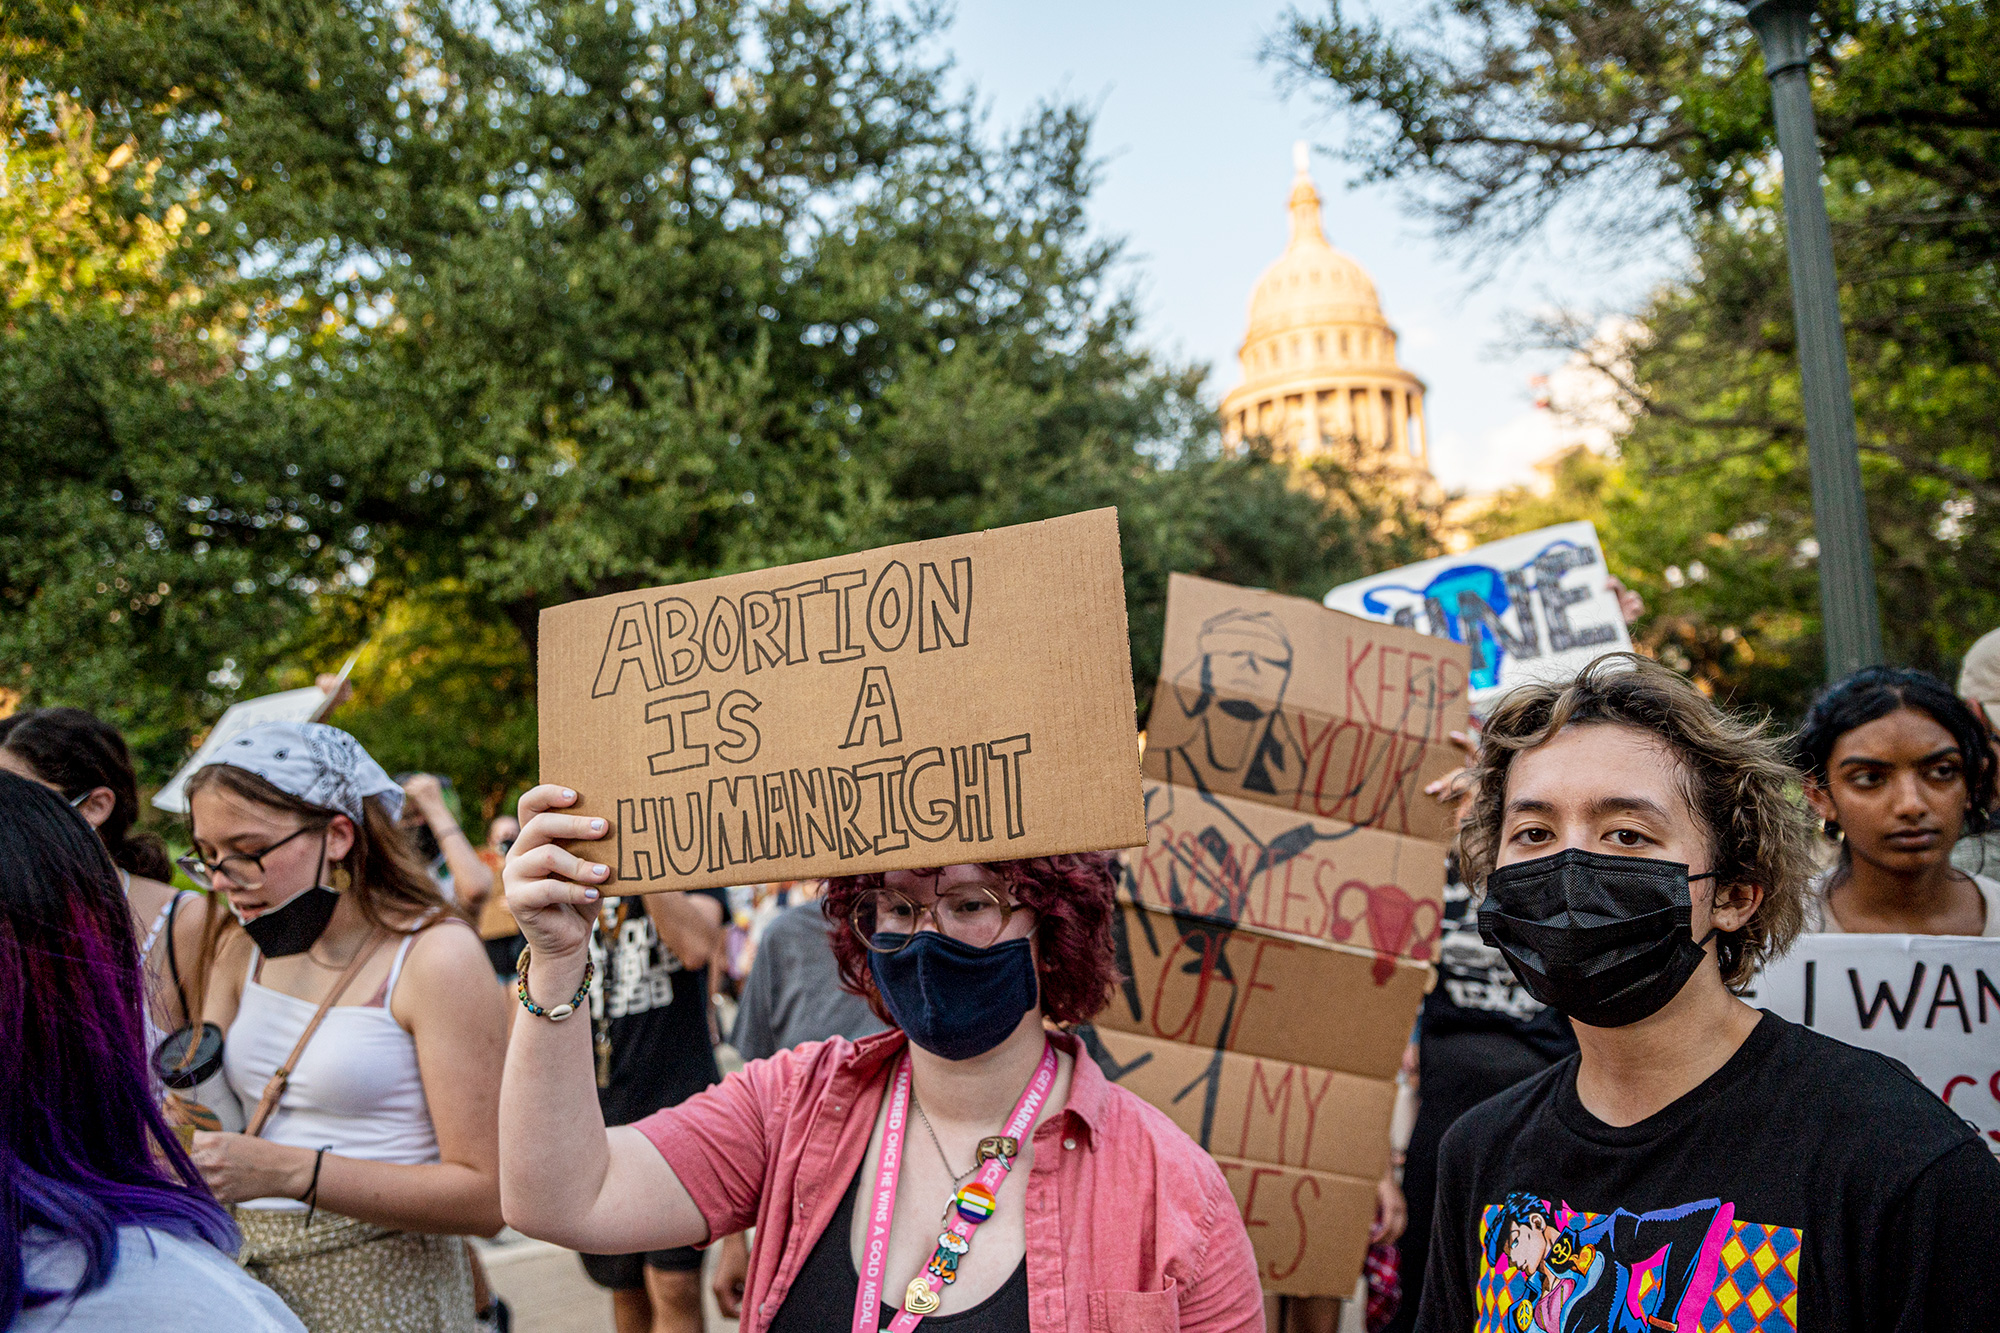 Pro-choice protesters march outside the Texas State Capitol on Wednesday, Sept. 1, 2021 in Austin, TX.